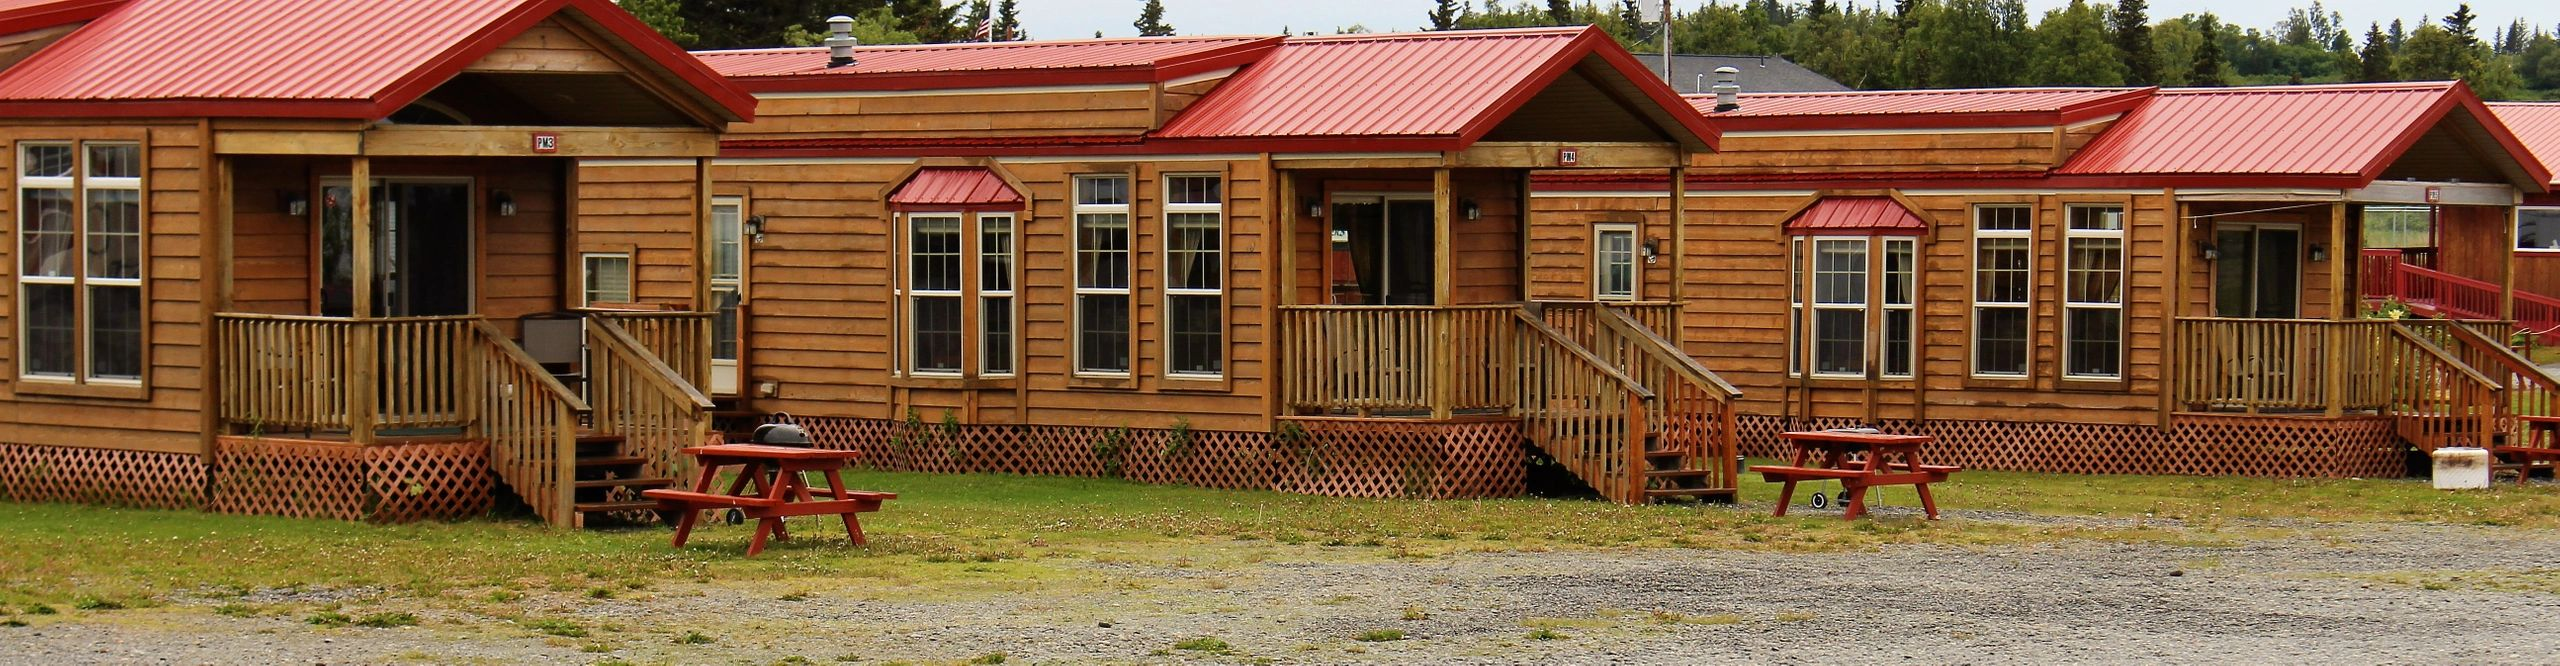 Alaskan Anglers RV Park - Home on rustic bunkhouse plans, large bunkhouse plans, park model plans, rv houses inside, camper plans, rv floor plan of s, rv floor plan for 20, kingsley coach plans, type a school bus conversion plans,